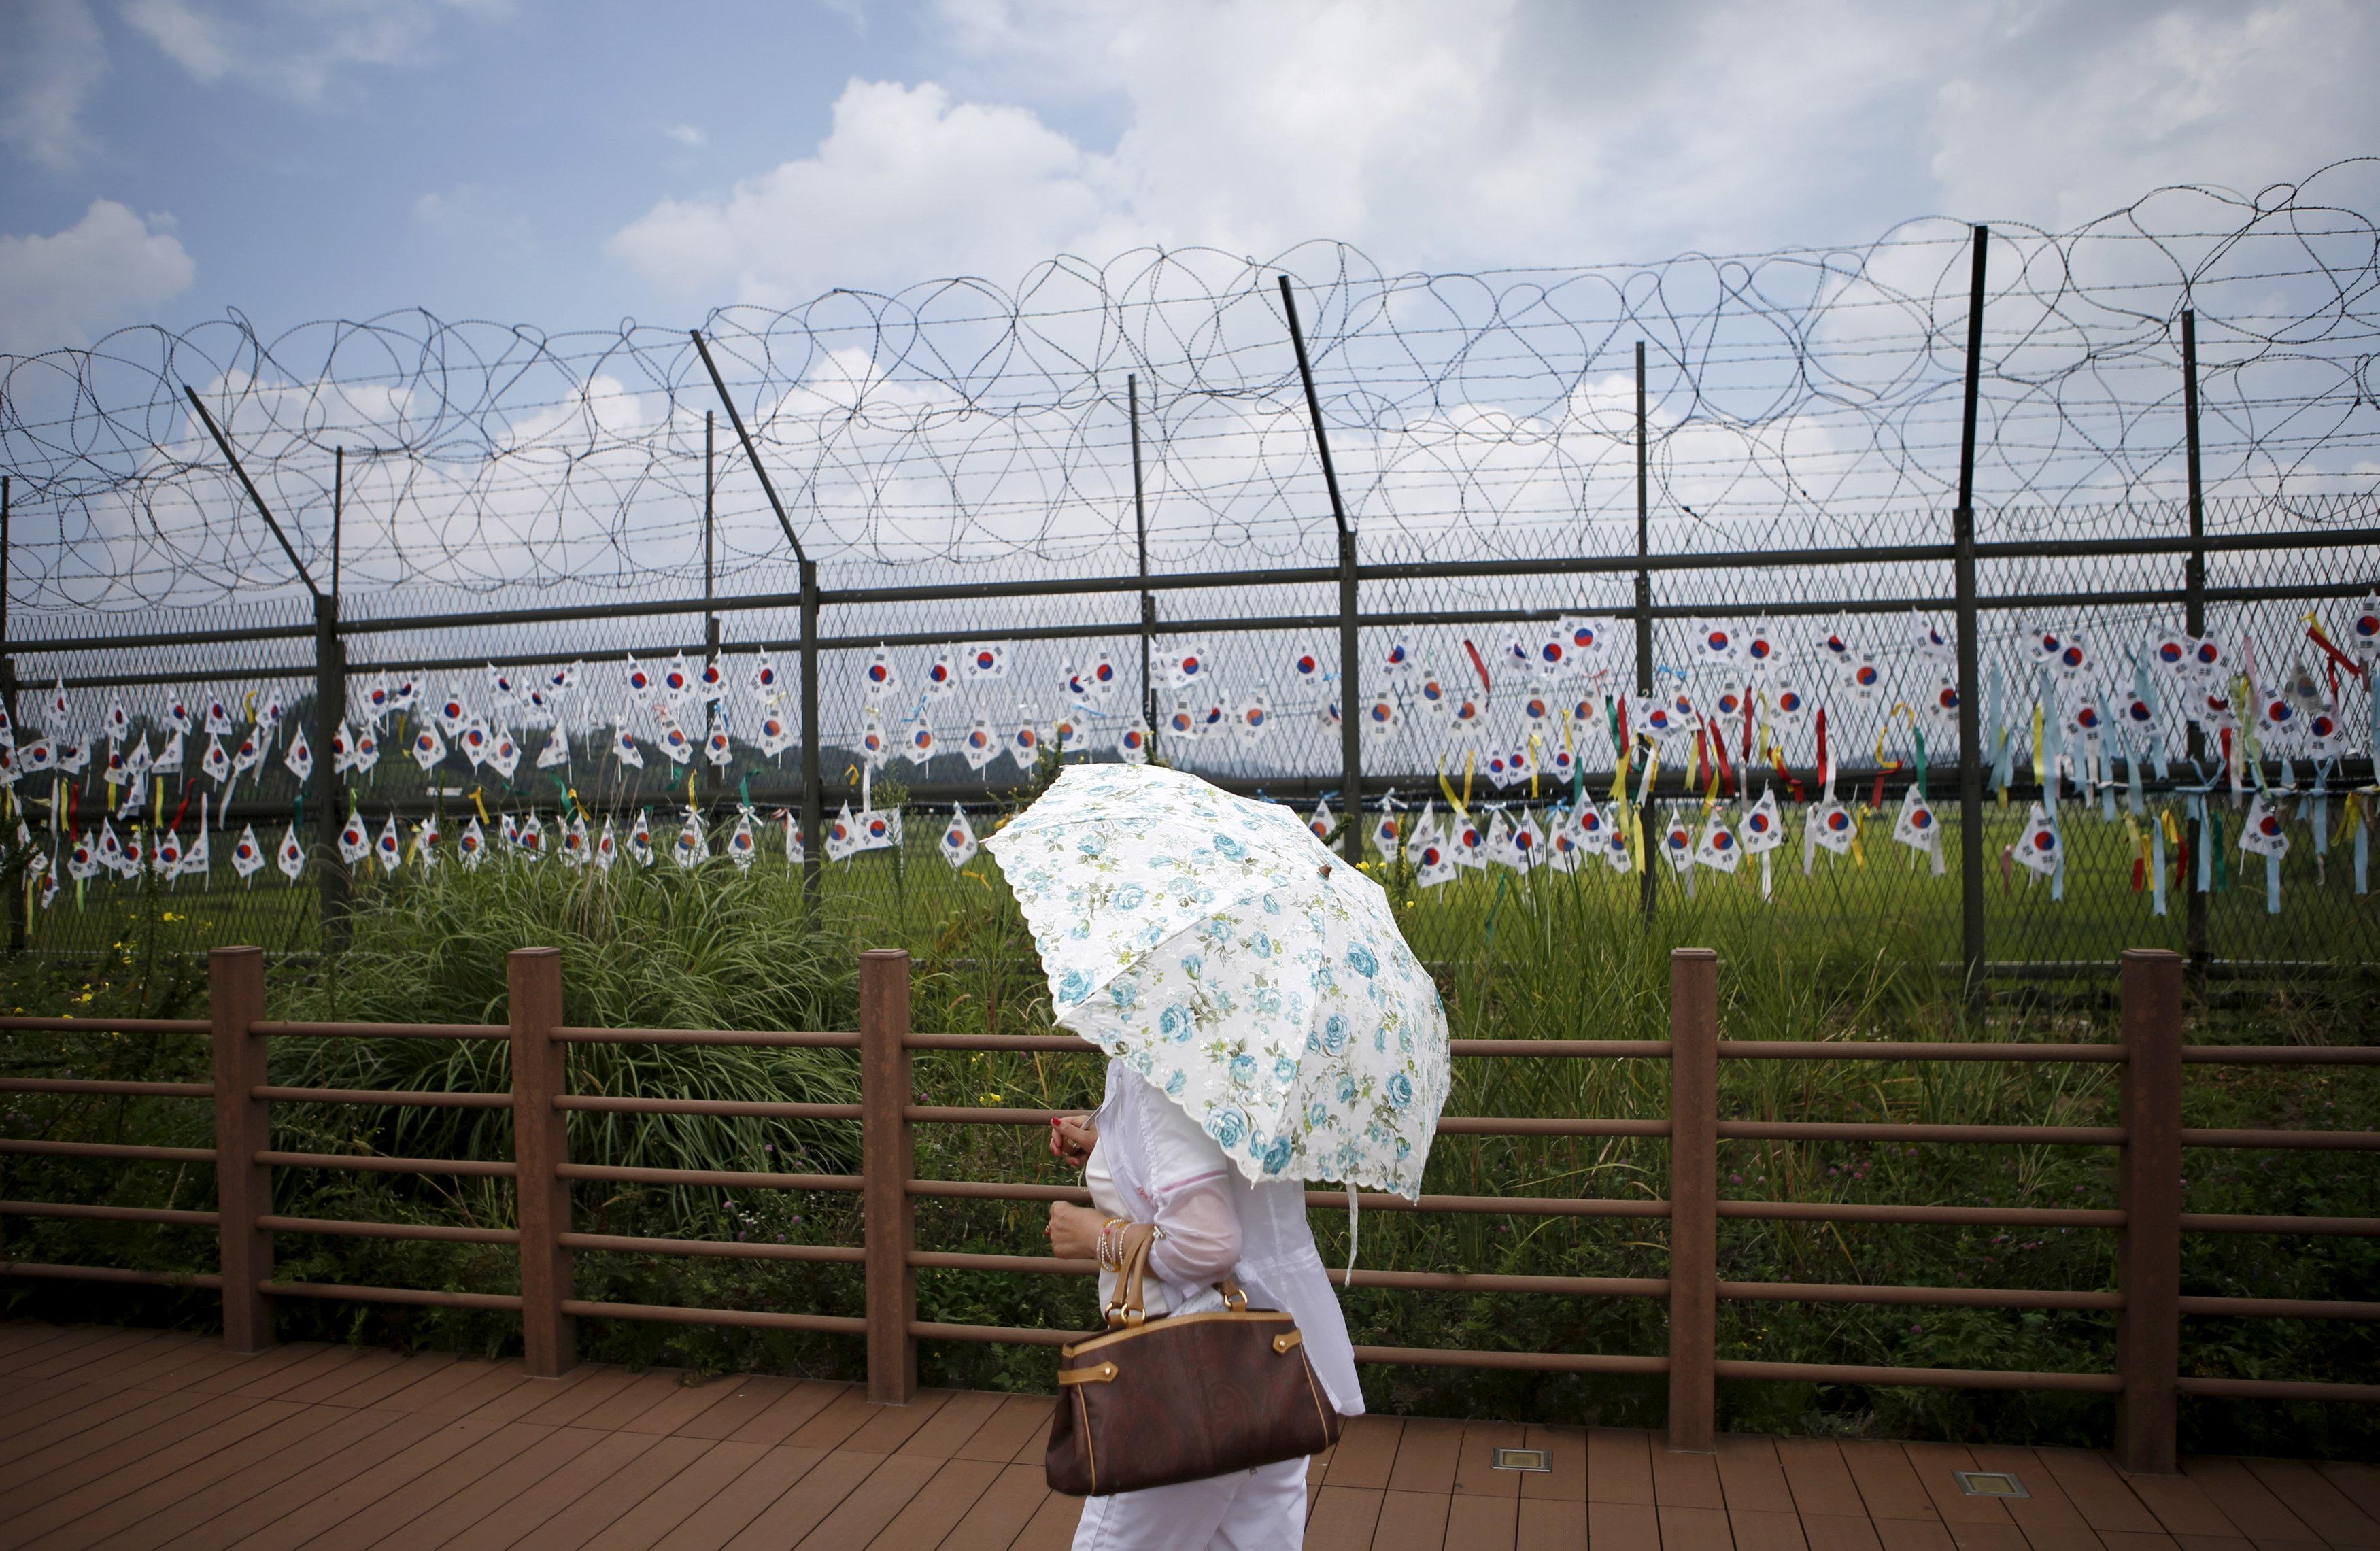 A tourist holding a parasol walks by a barbed-wire fence decorated by South Korean national flags at the Imjingak pavilion near the demilitarized zone separating the two Koreas in Paju, South Korea, August 22, 2015.  Kim Hong-Ji